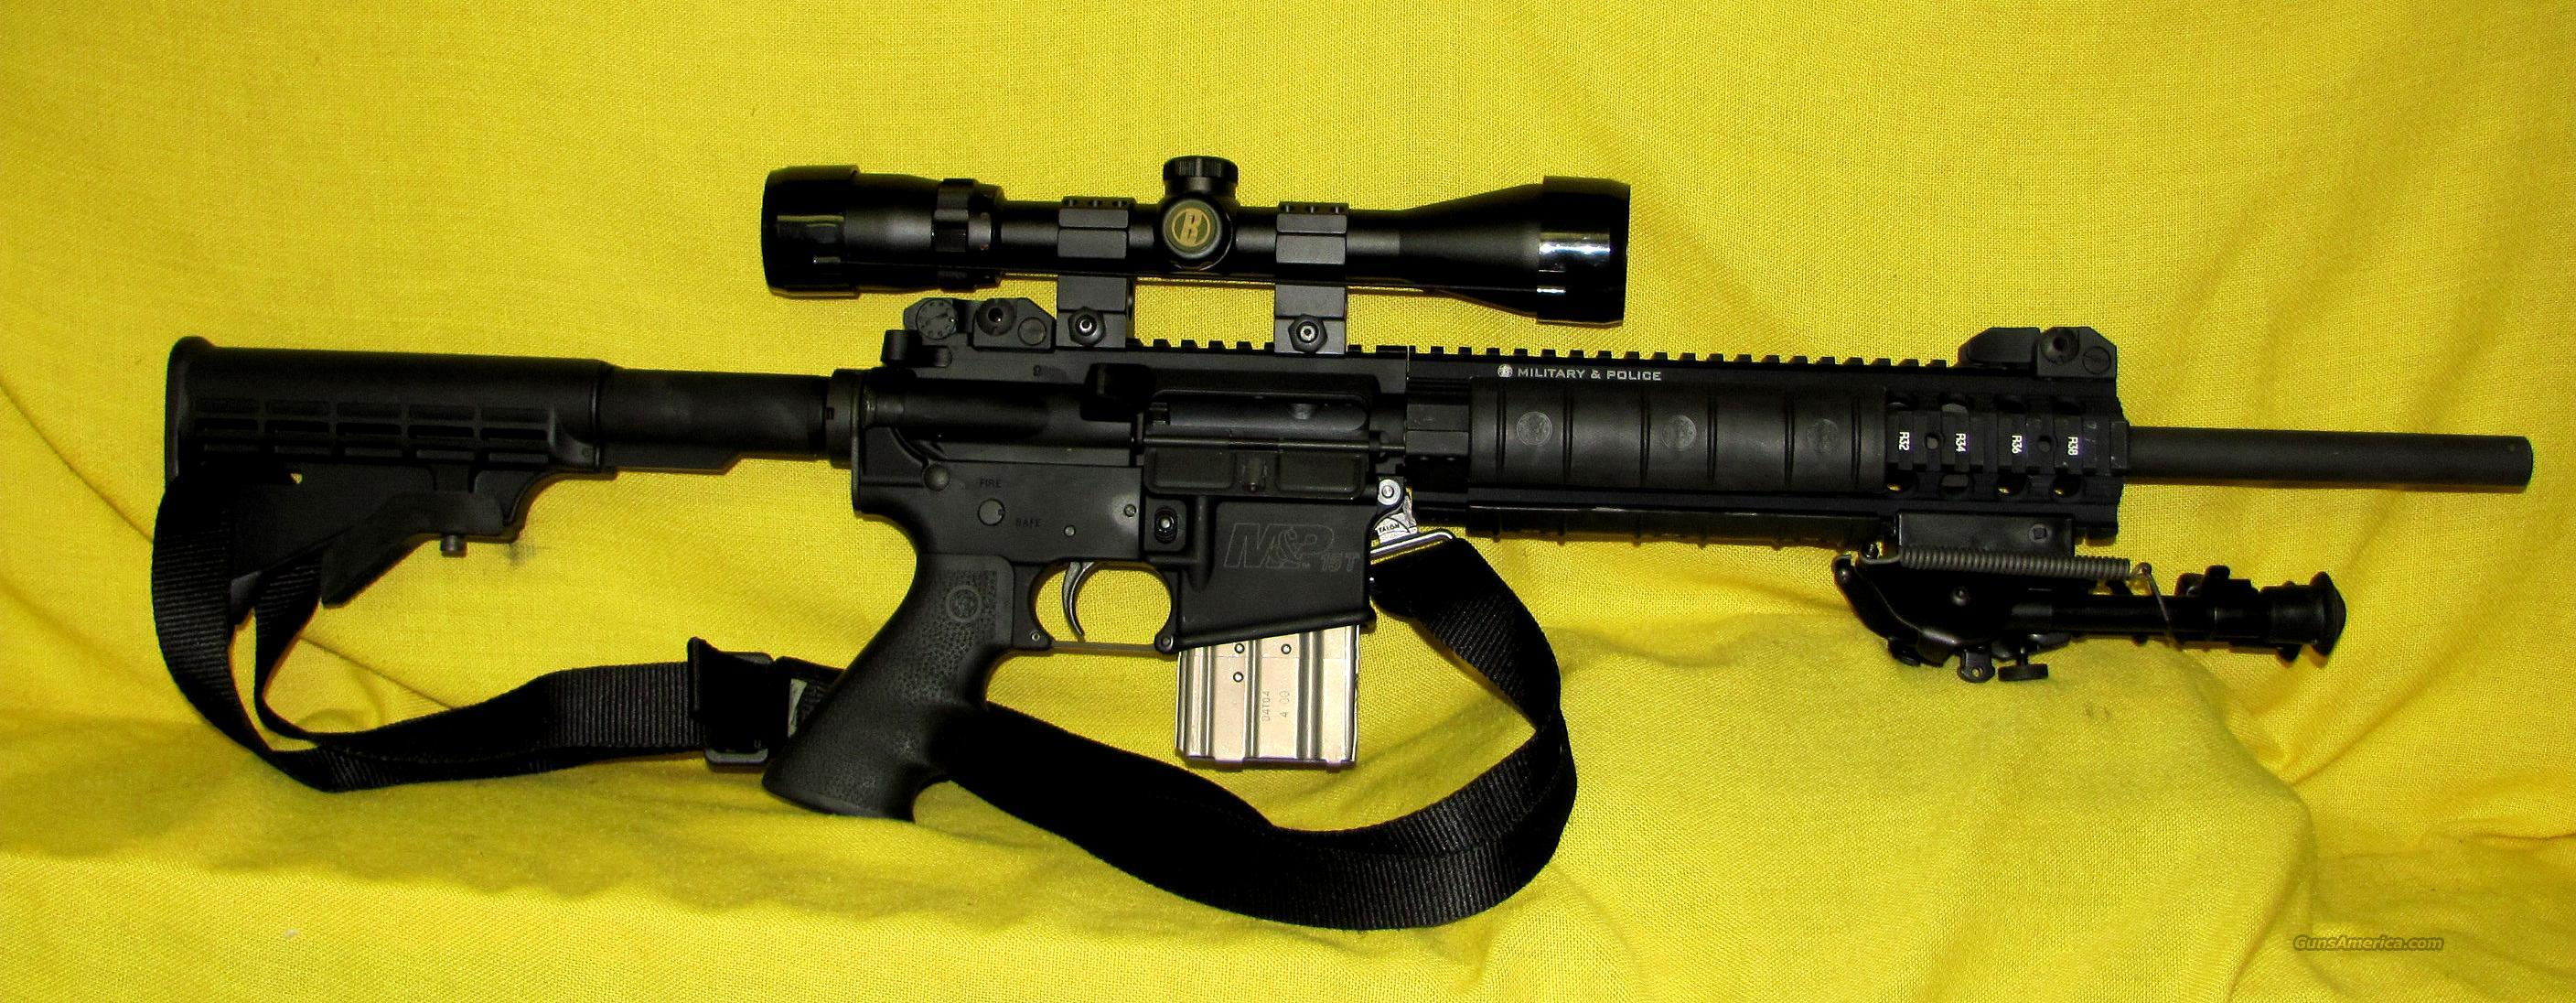 S&W M&P 15T  Guns > Rifles > AR-15 Rifles - Small Manufacturers > Complete Rifle